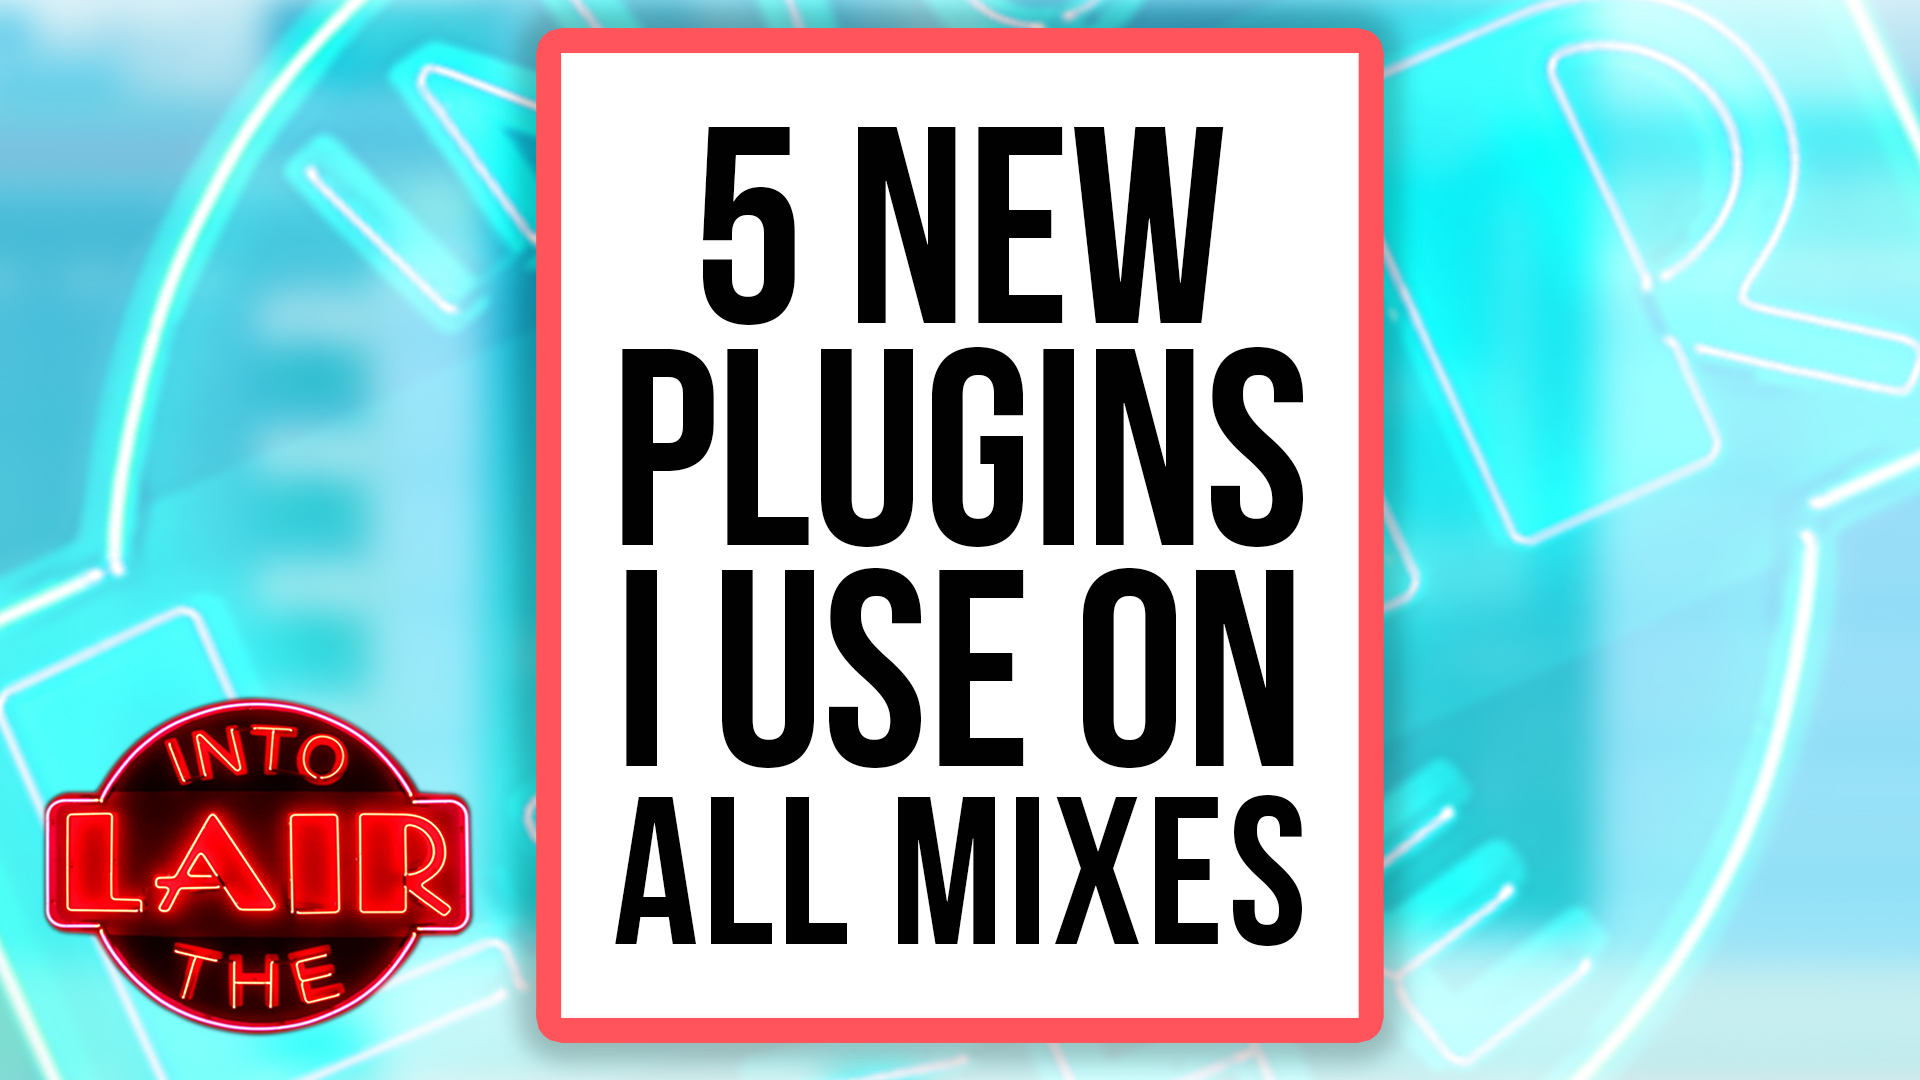 5 New Plugins I Use On All Mixes